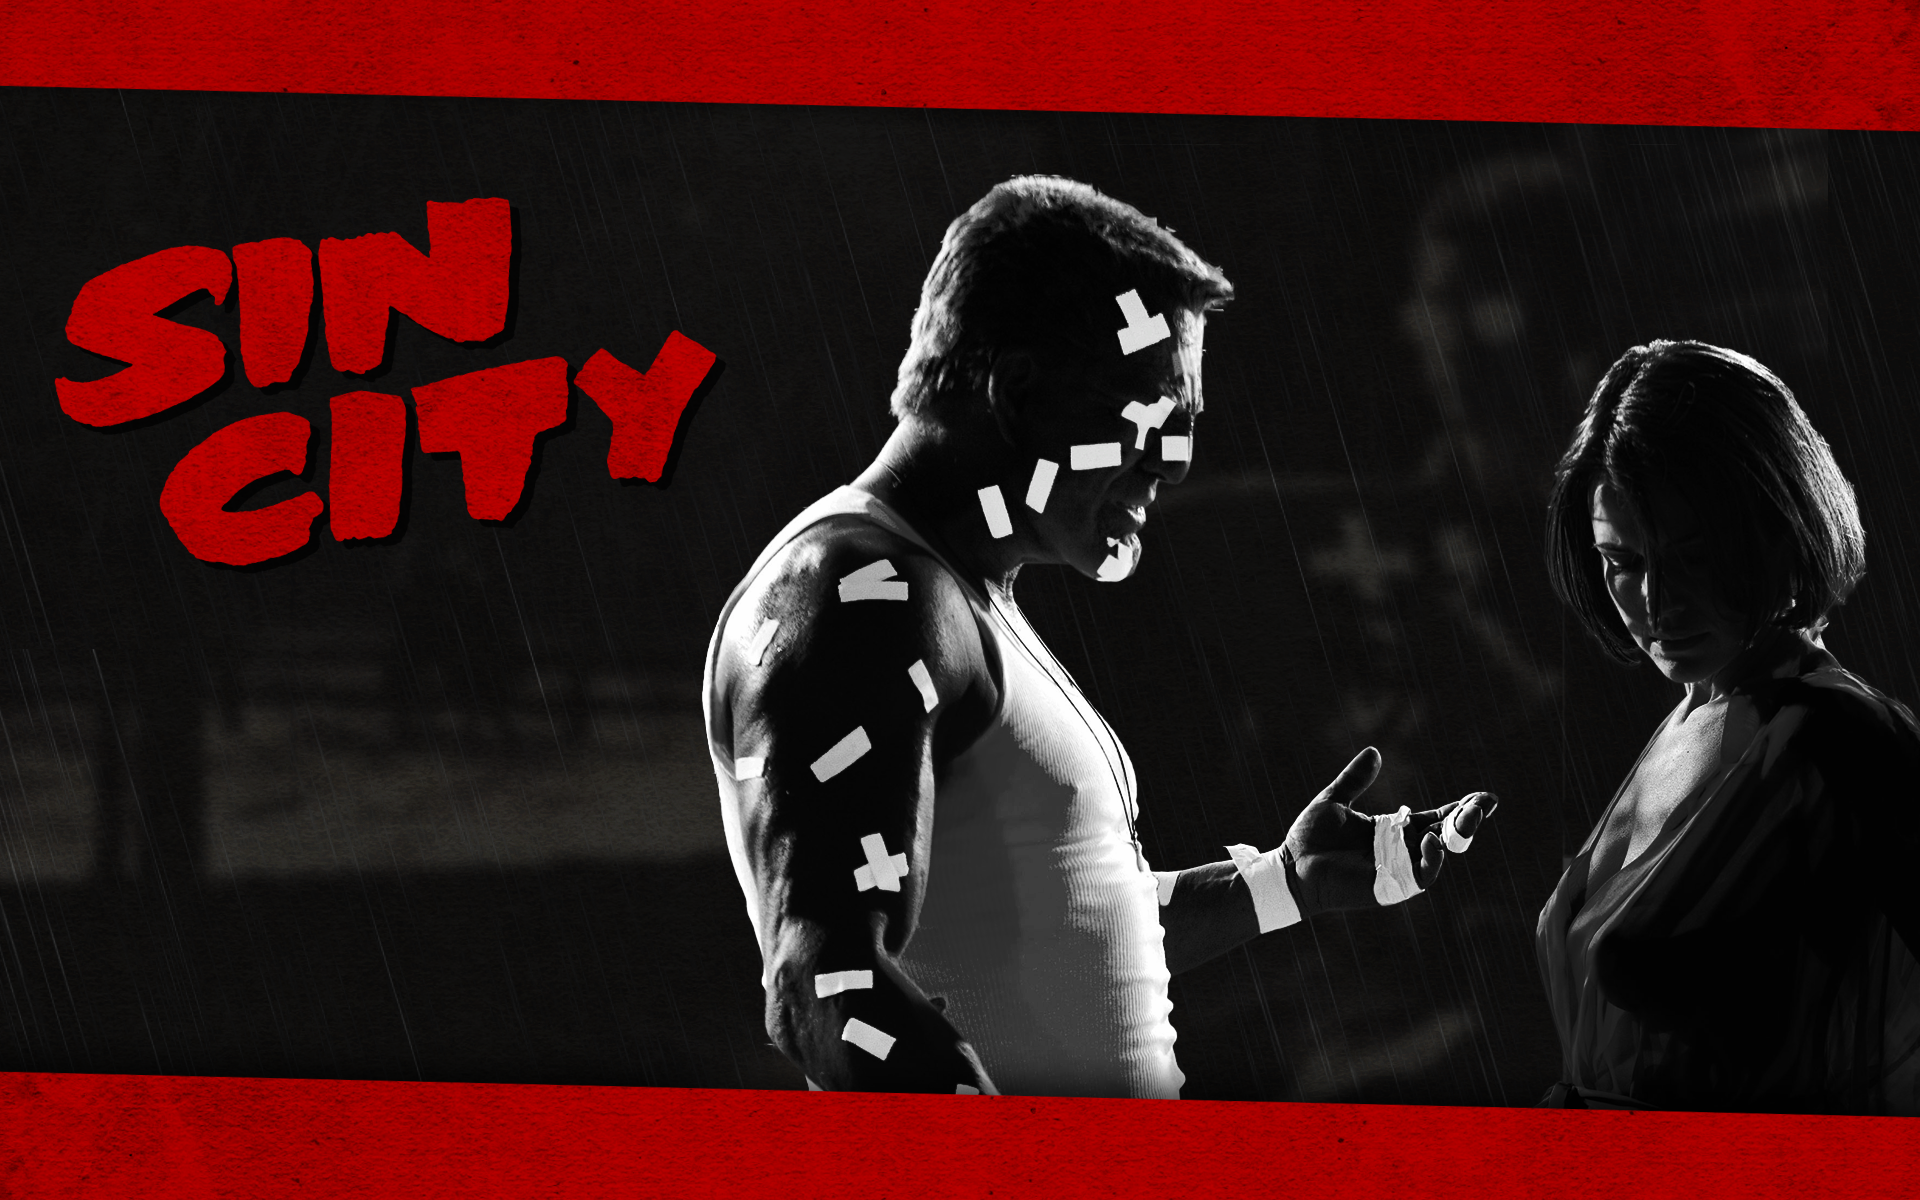 Sin City on TarantinoFanClub - deviantART